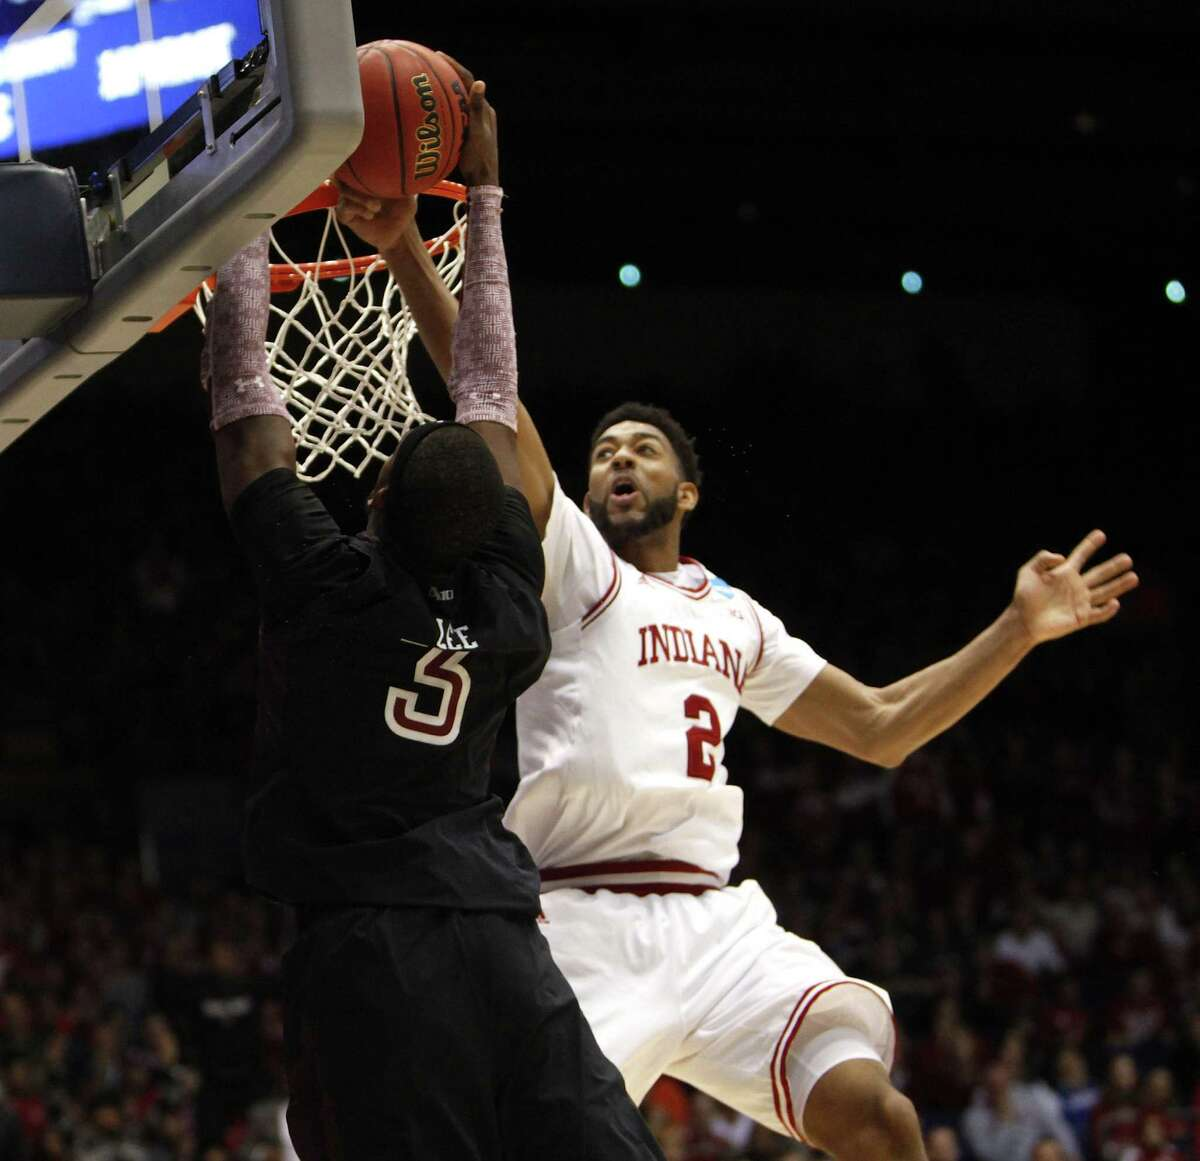 Indiana's Christian Watford blocks a shot by Temple's Anthony Lee during the second half. The Hoosiers closed with a 10-0 run en route to the 58-52 victory.